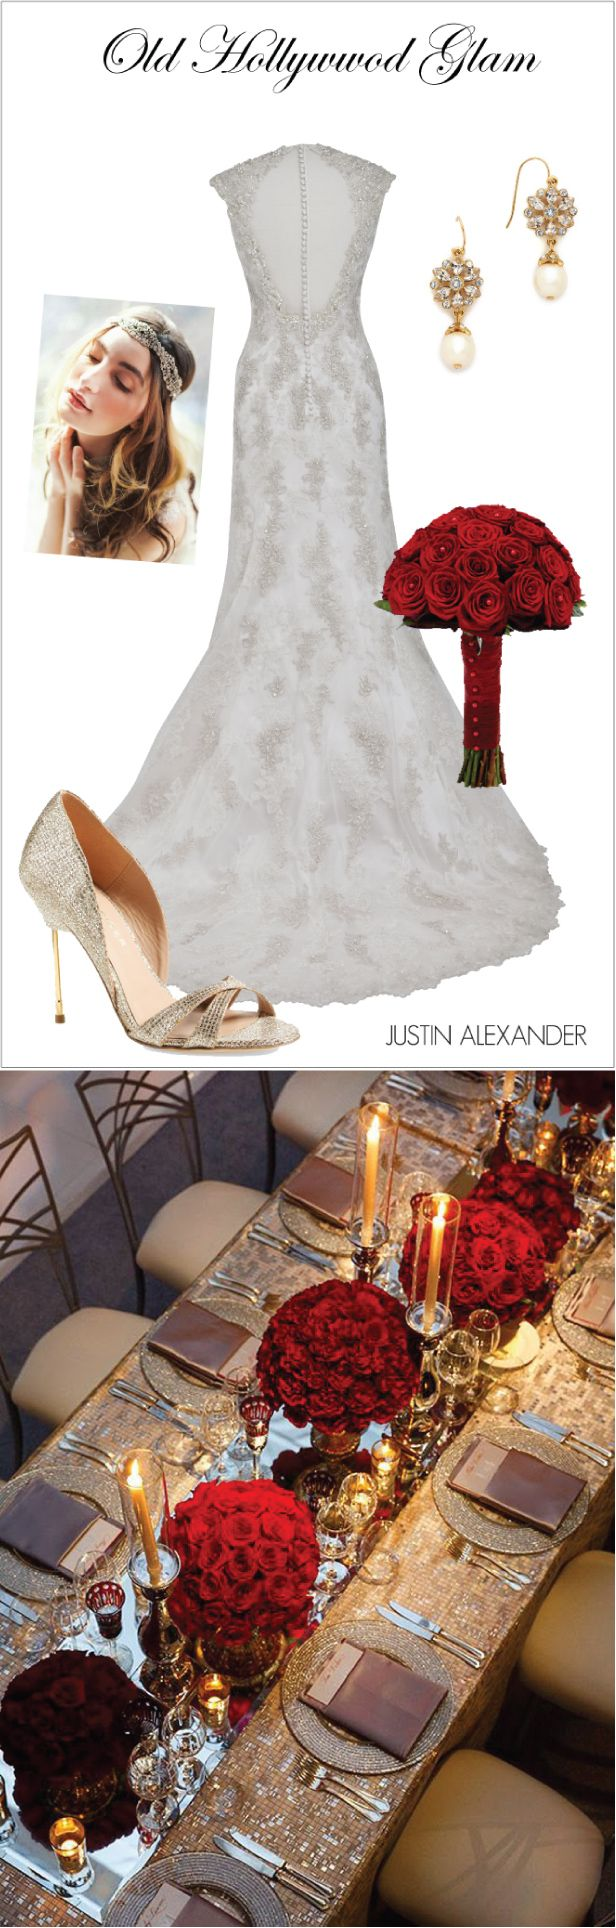 Wedding Day Look: Old Hollywood Glam ~ Brought to you by @jabridal